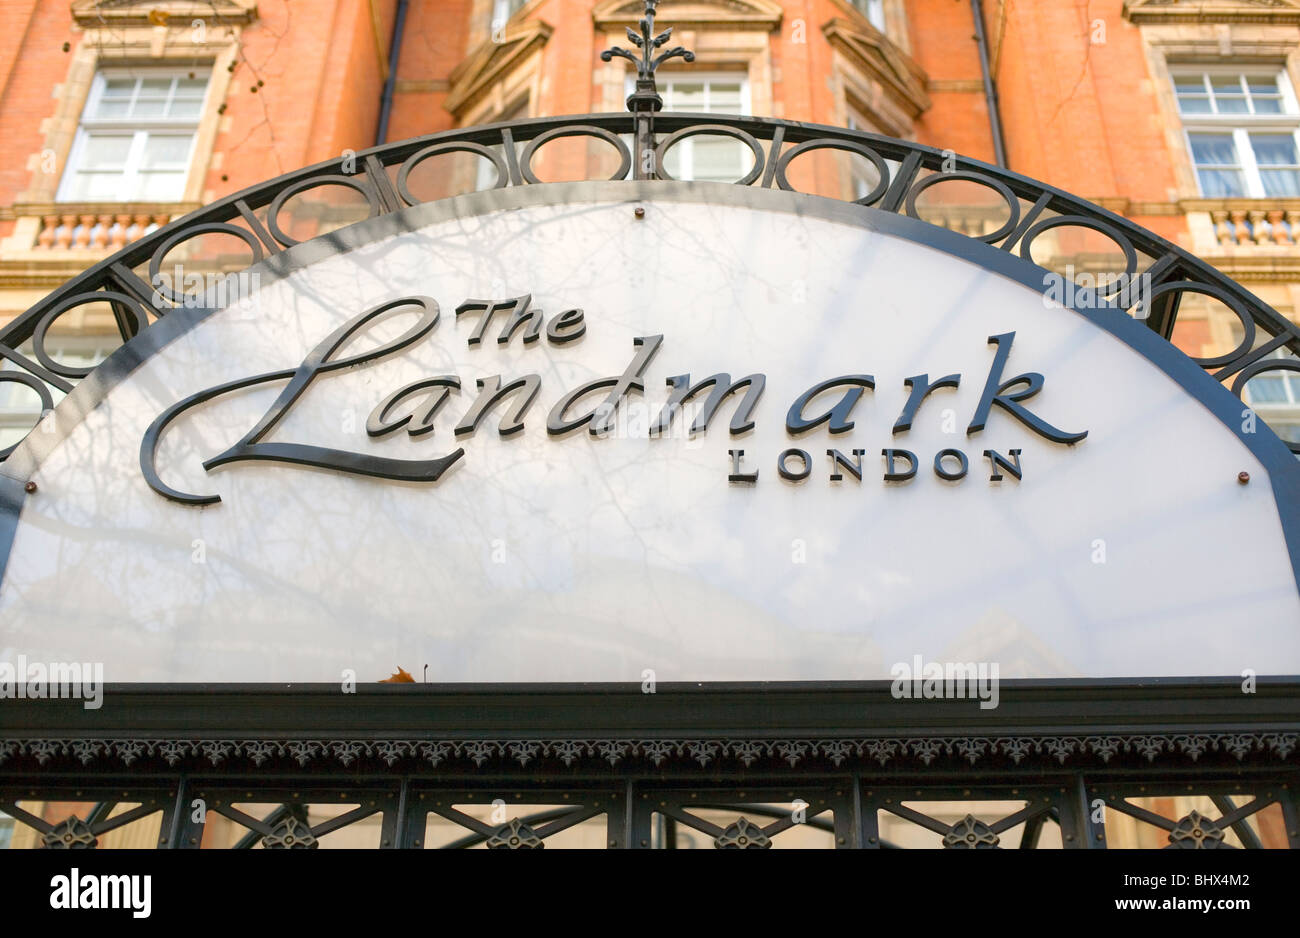 The Landmark Hotel, Marylebone Road, London, England, UK, Europe - Stock Image